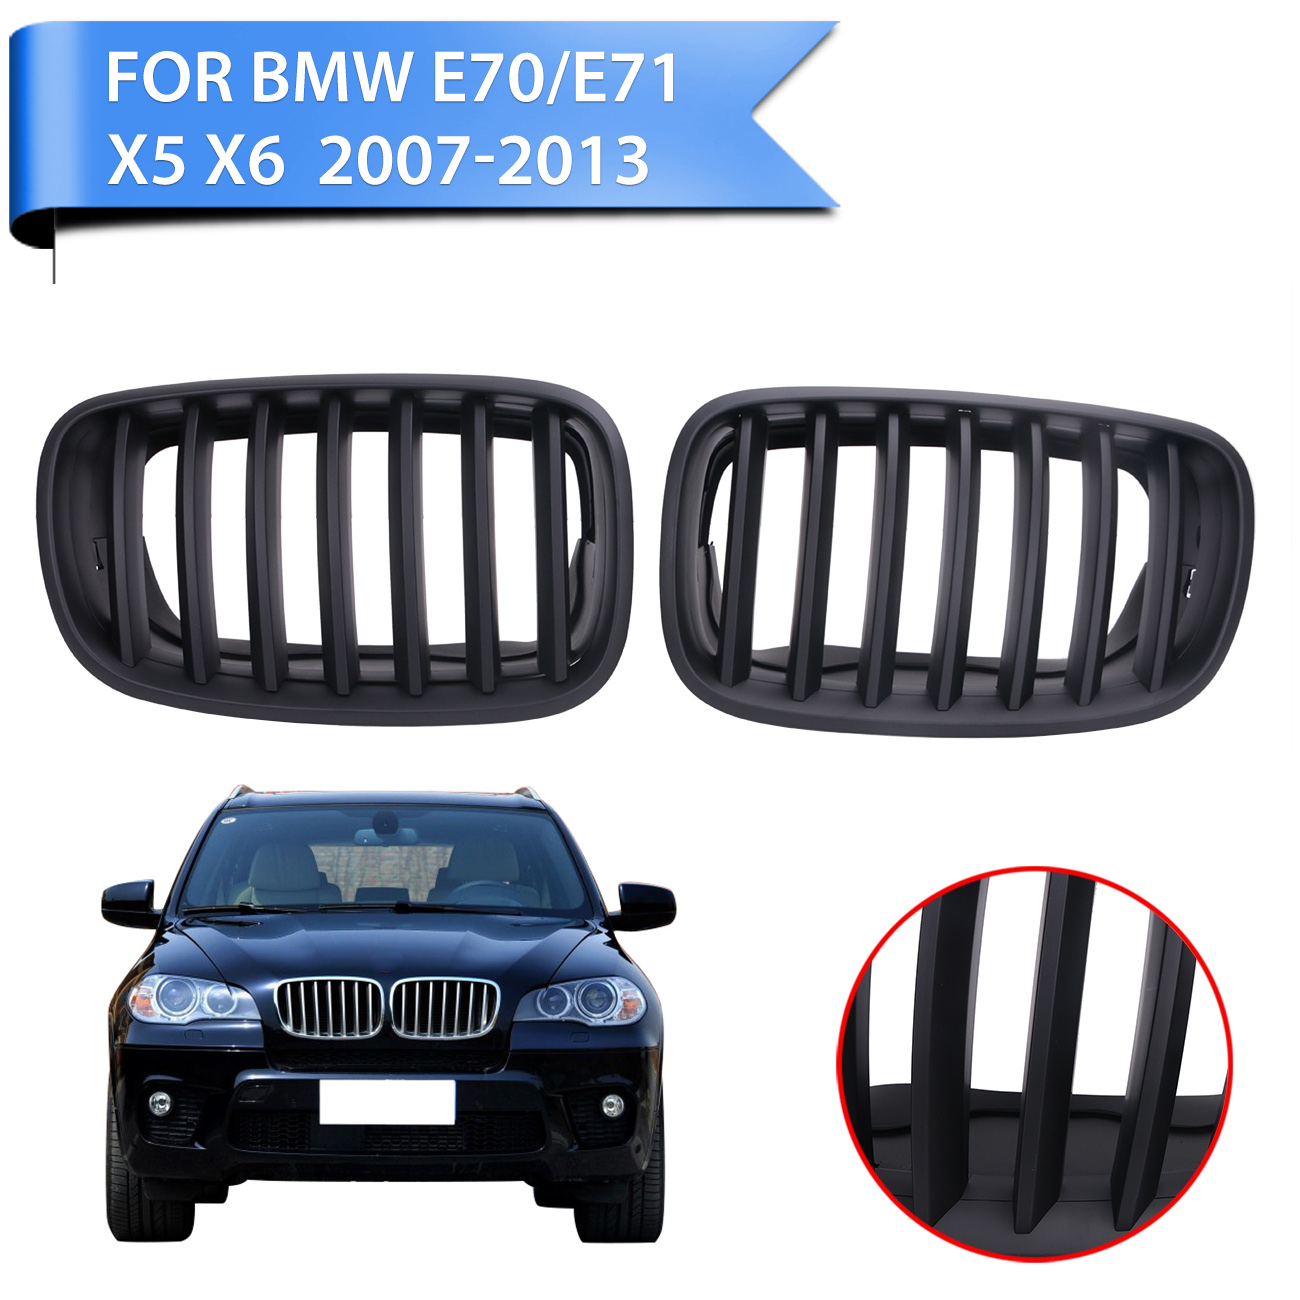 Front grille kidney grills lattice for bmw e70 e71 x5 x6 suv m sport xdrive 2007